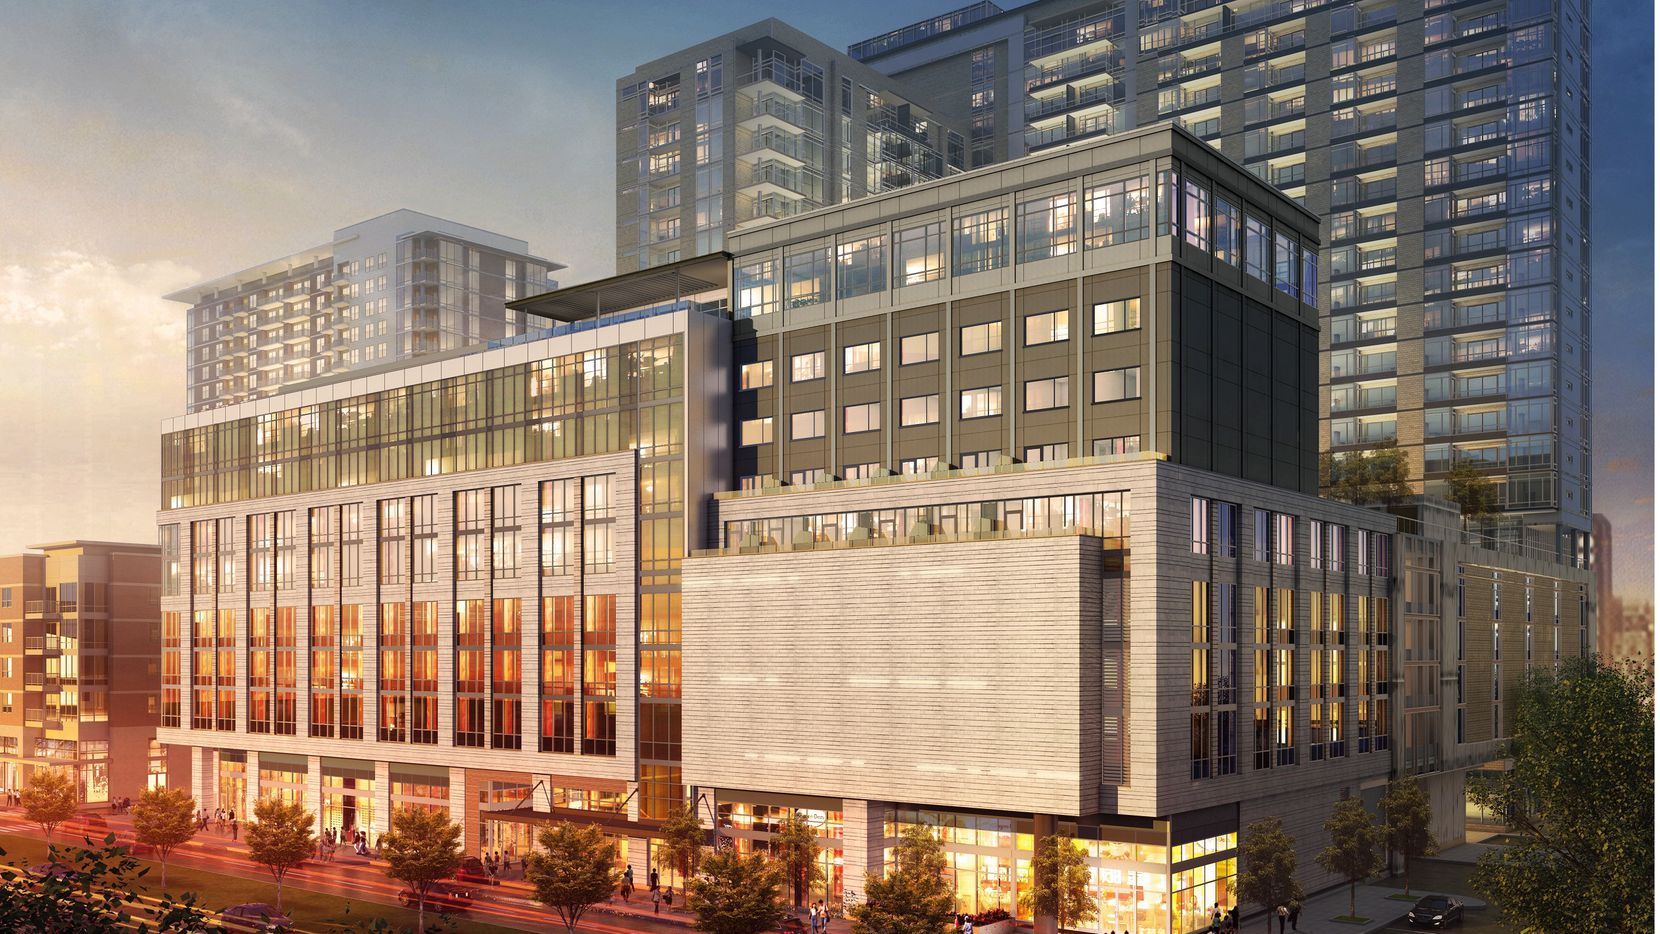 Hilton Worldwide plans to open an outpost of its newest brand, Canopy, at Cityplace West and Oak Grove in Uptown. Opening in 2017, the hotel will have 150 rooms. (Hilton)